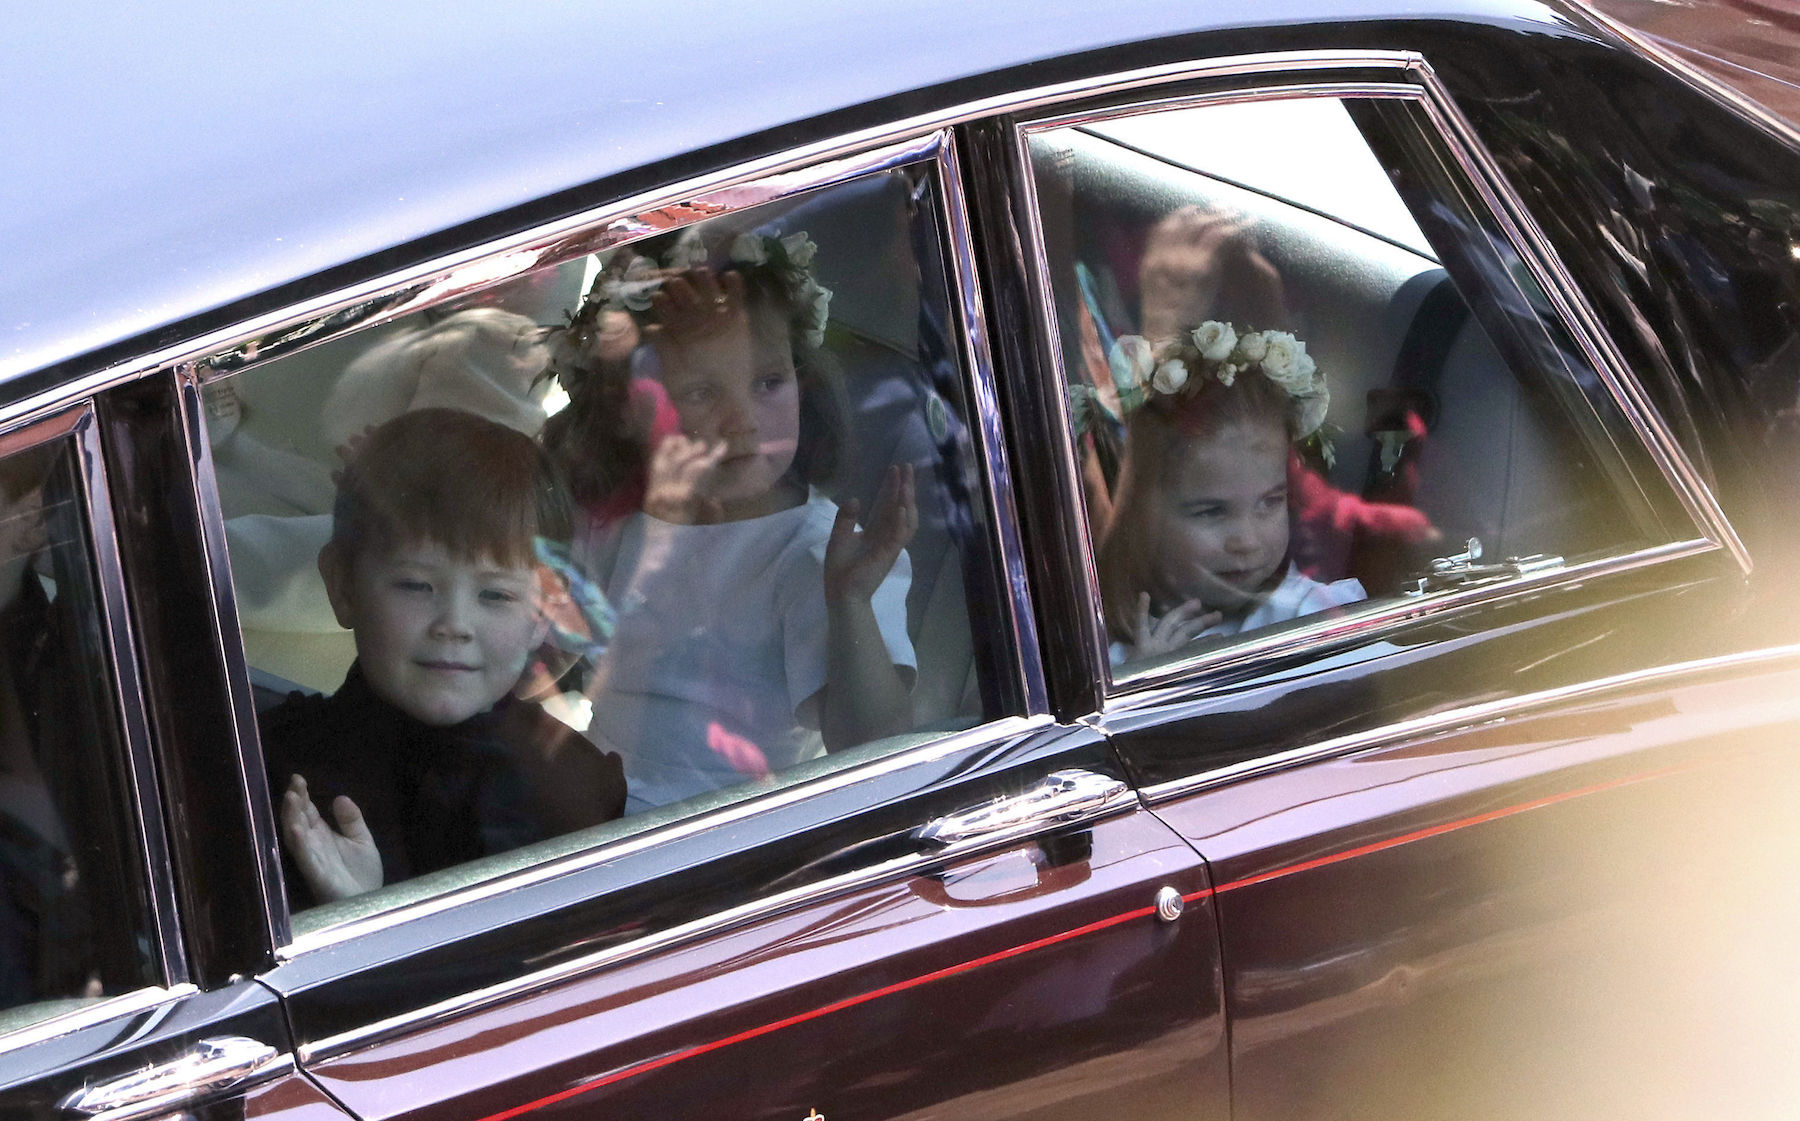 <div class='meta'><div class='origin-logo' data-origin='AP'></div><span class='caption-text' data-credit='Andrew Matthews/pool photo via AP'>Princess Charlotte, right, arrives for the wedding ceremony of Prince Harry and Meghan Markle at St. George's Chapel in Windsor Castle in Windsor.</span></div>